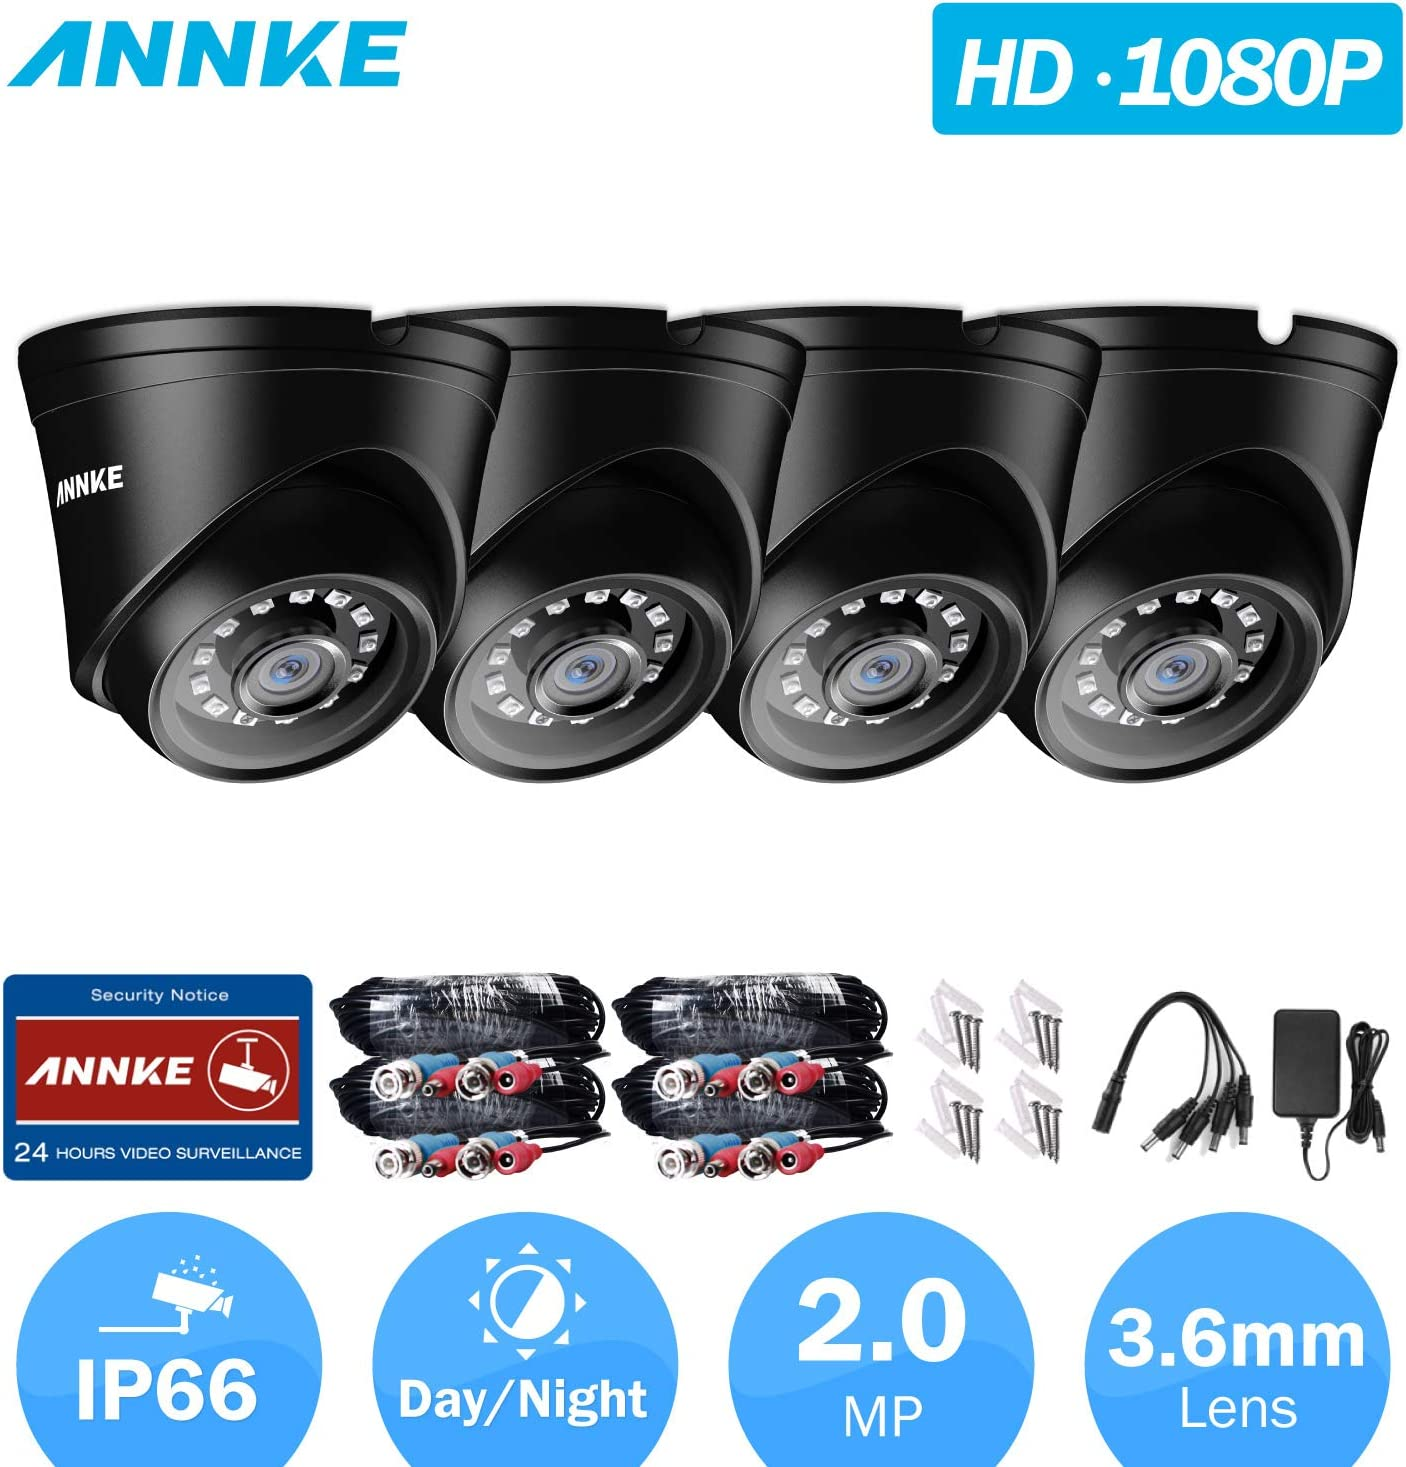 ANNKE HD TVI Add-on 1080p Video Security Camera with Indoor Outdoor IP66 Weatherproof Housing and IR Night Vision LEDs 4-Pack, Black